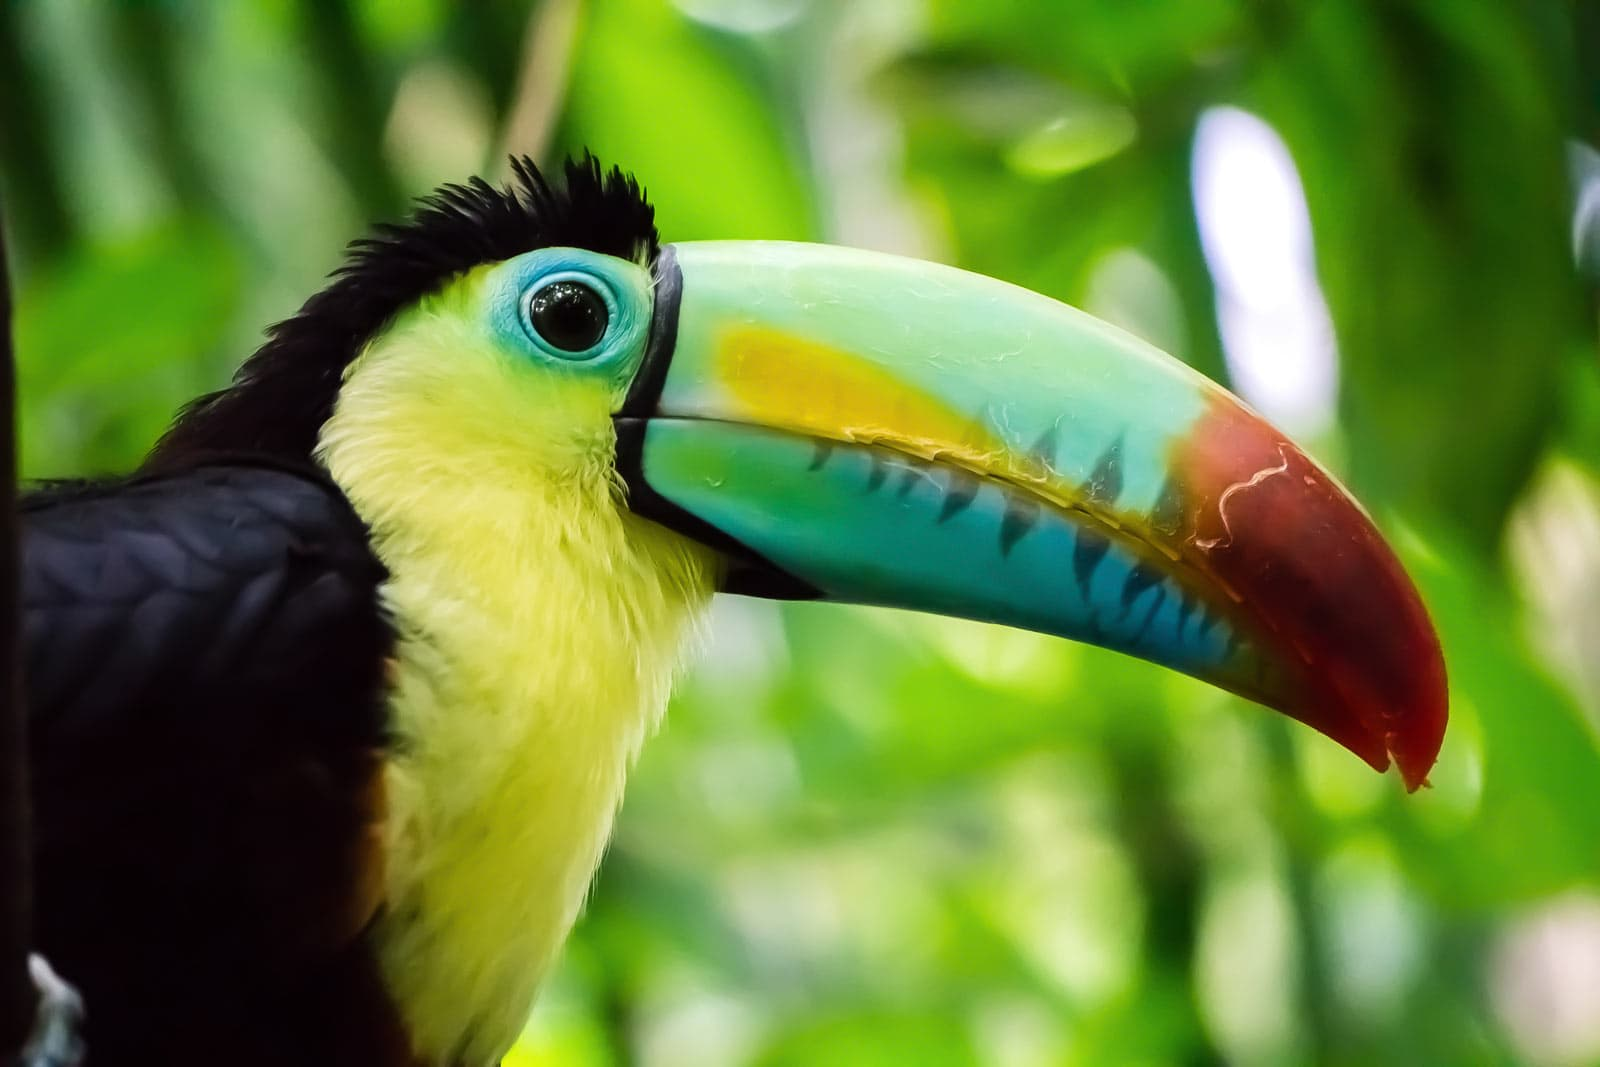 The Keel-Billed Toucan is known for its oversize rainbow-colored beak.